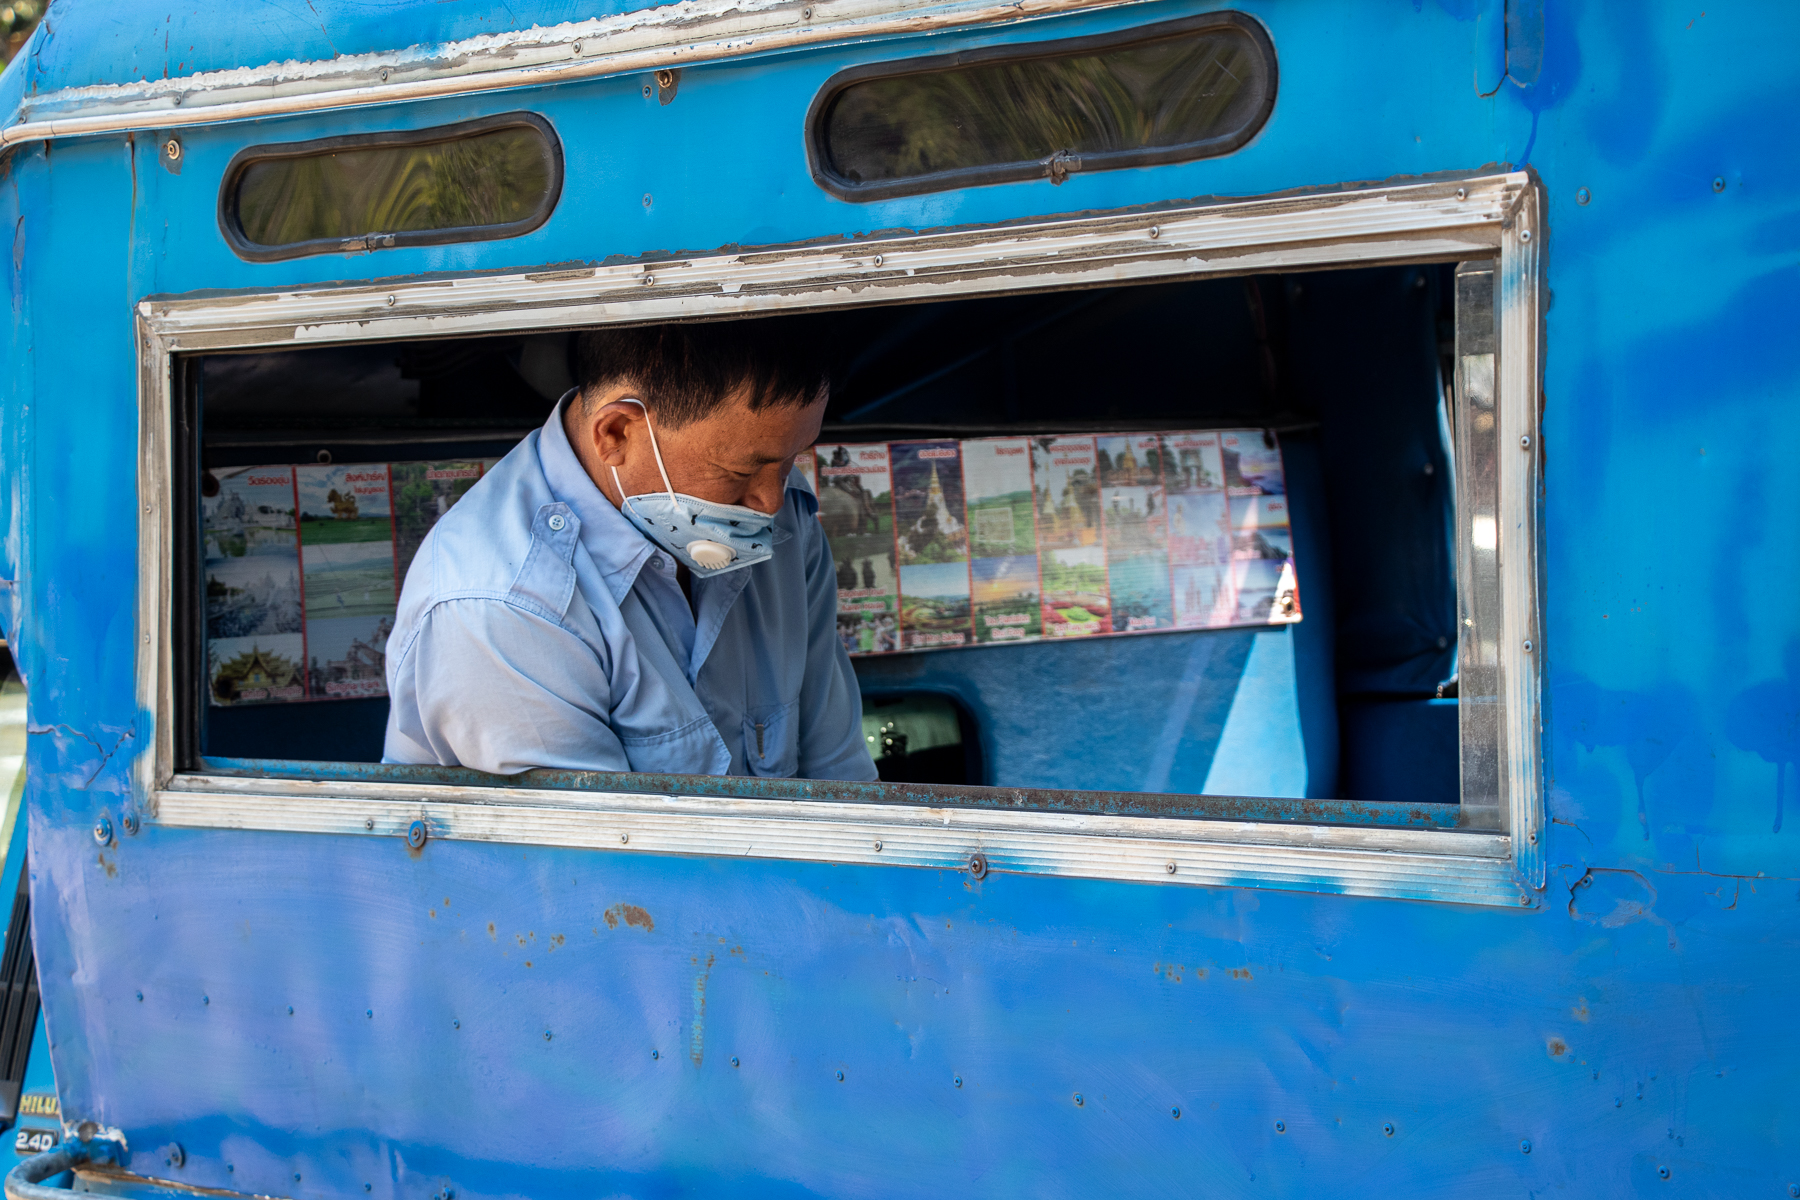 Songthaew drivers in Thailand have been trying to protect themselves from the virus with masks for weeks.